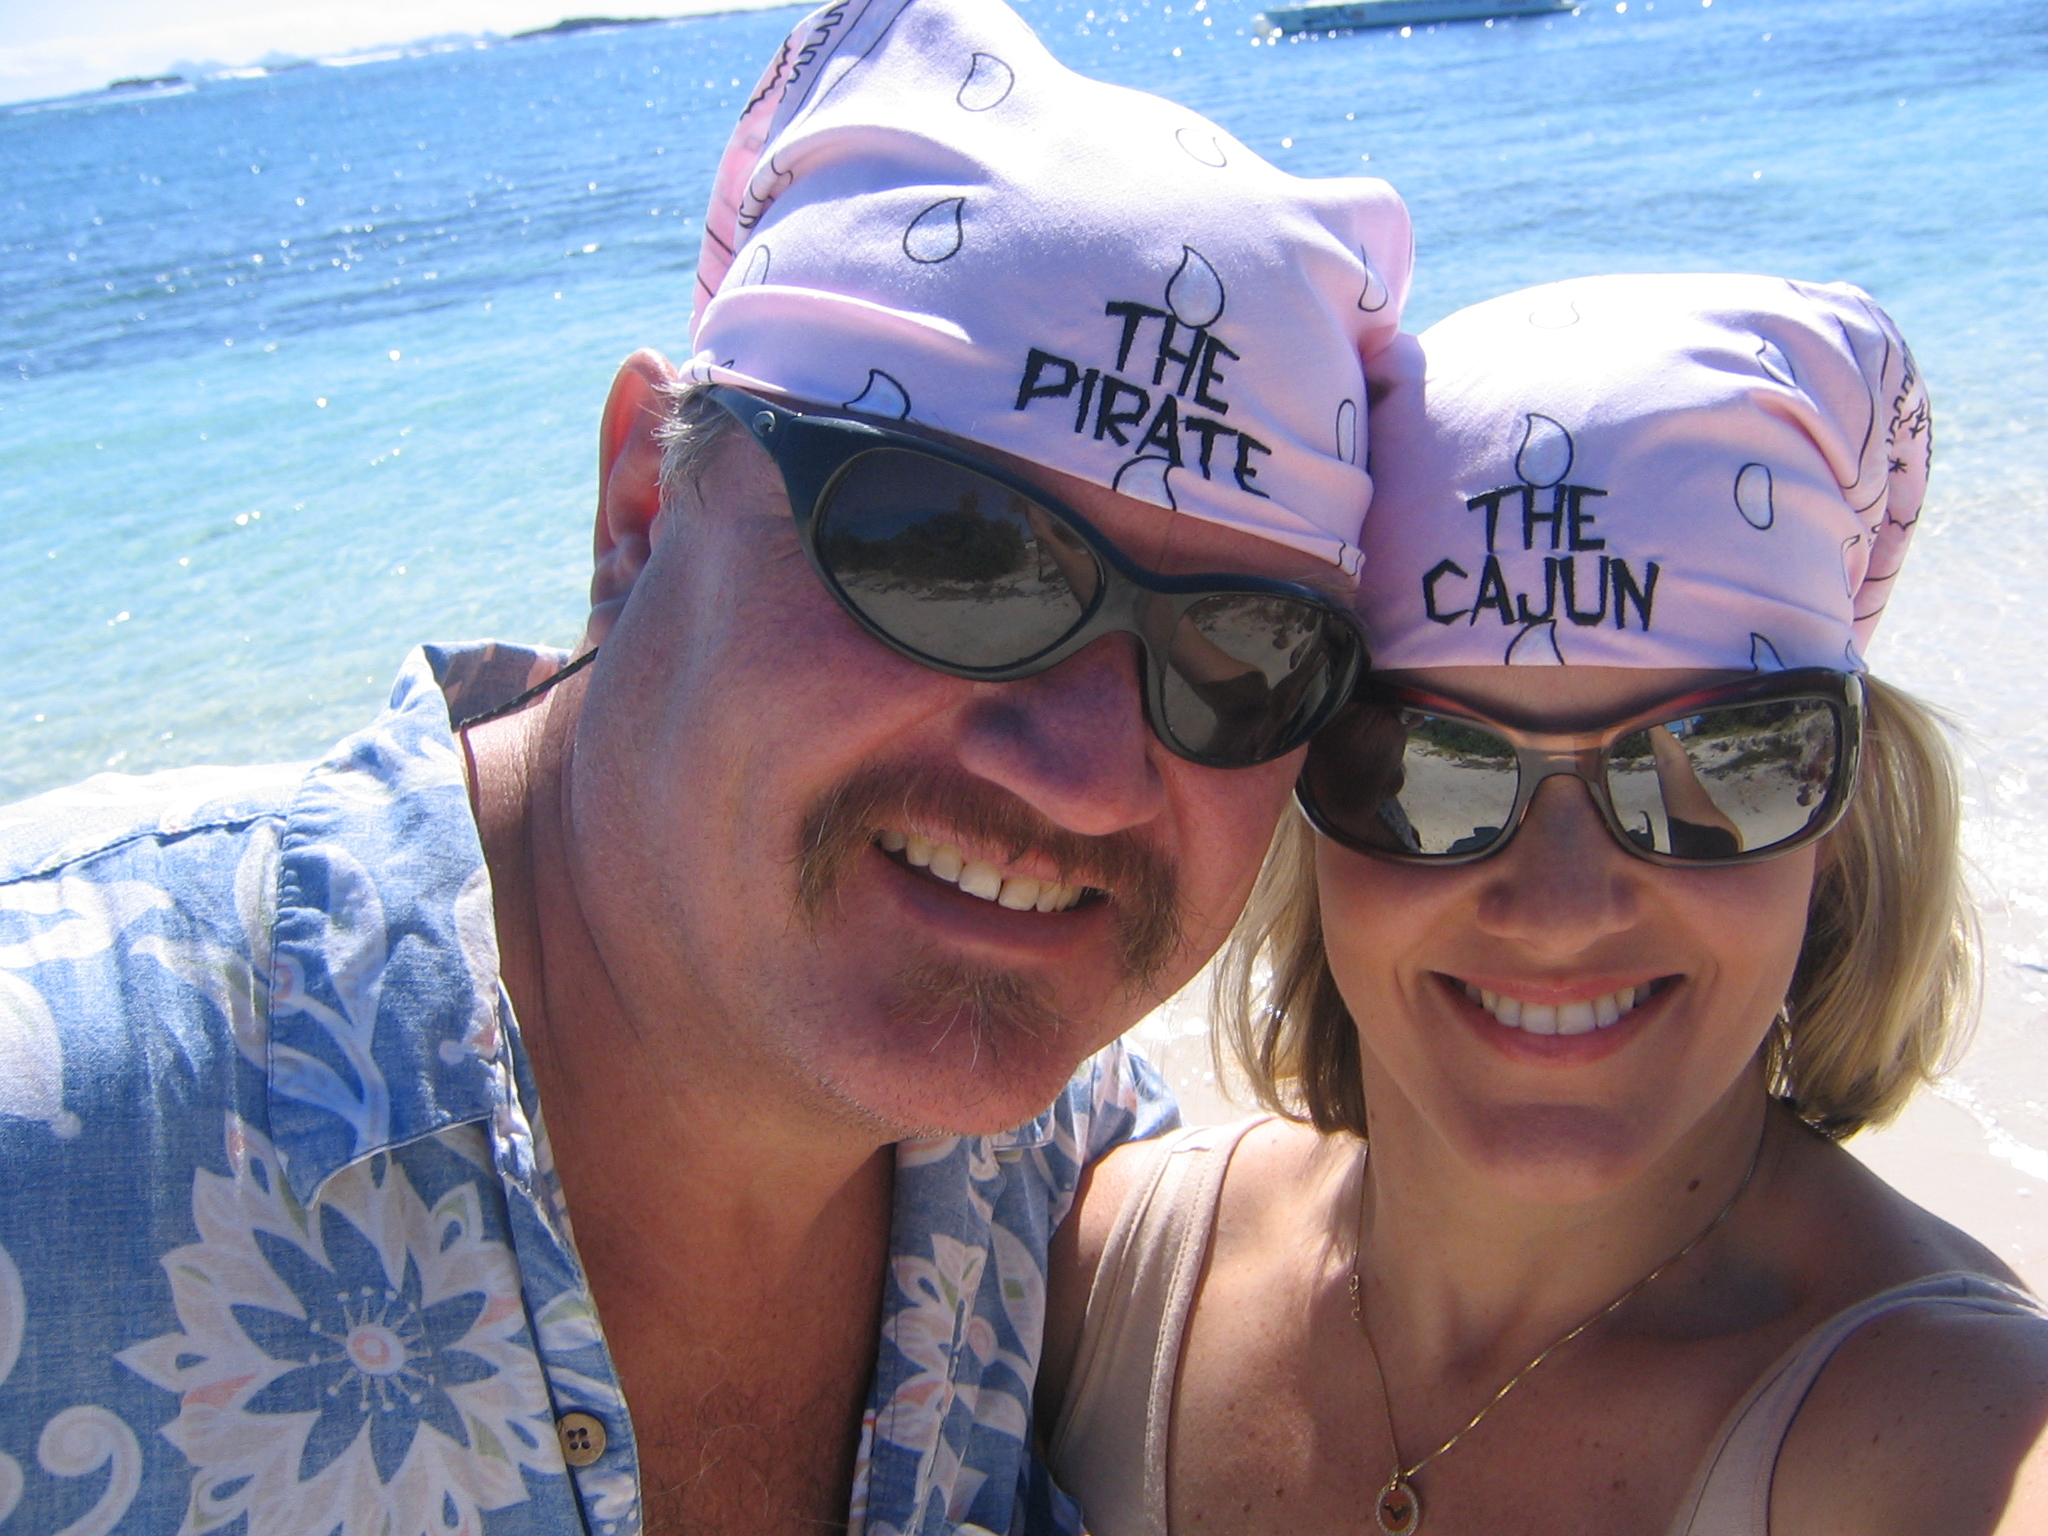 The Pirate and the Cajun at Embouchere Bay